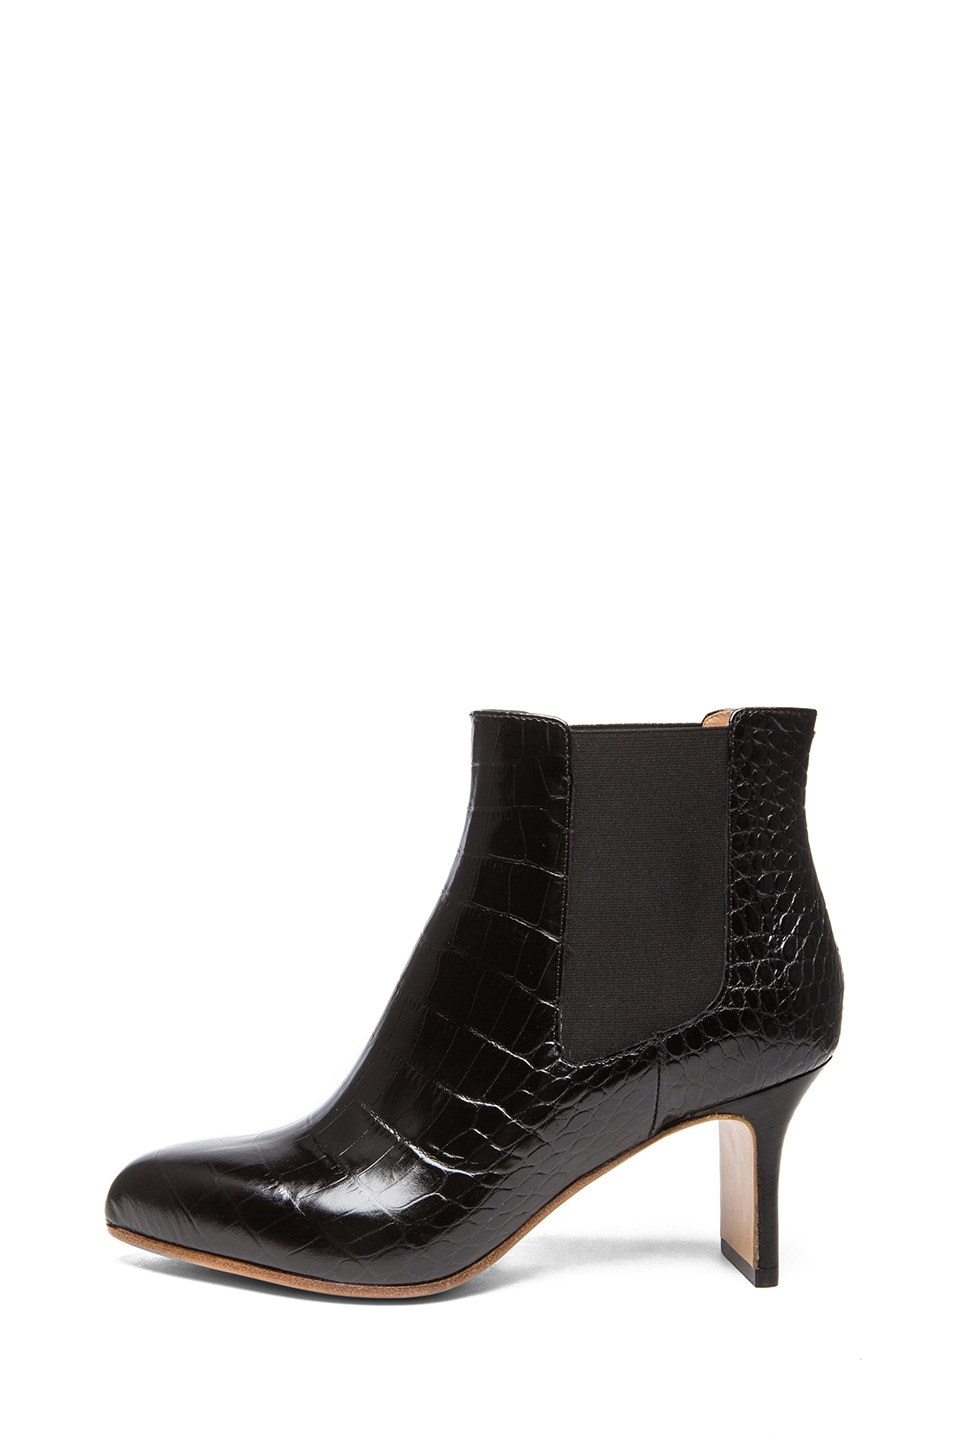 Image 1 of Maison Margiela Croc Embossed Leather Defile Booties in Black